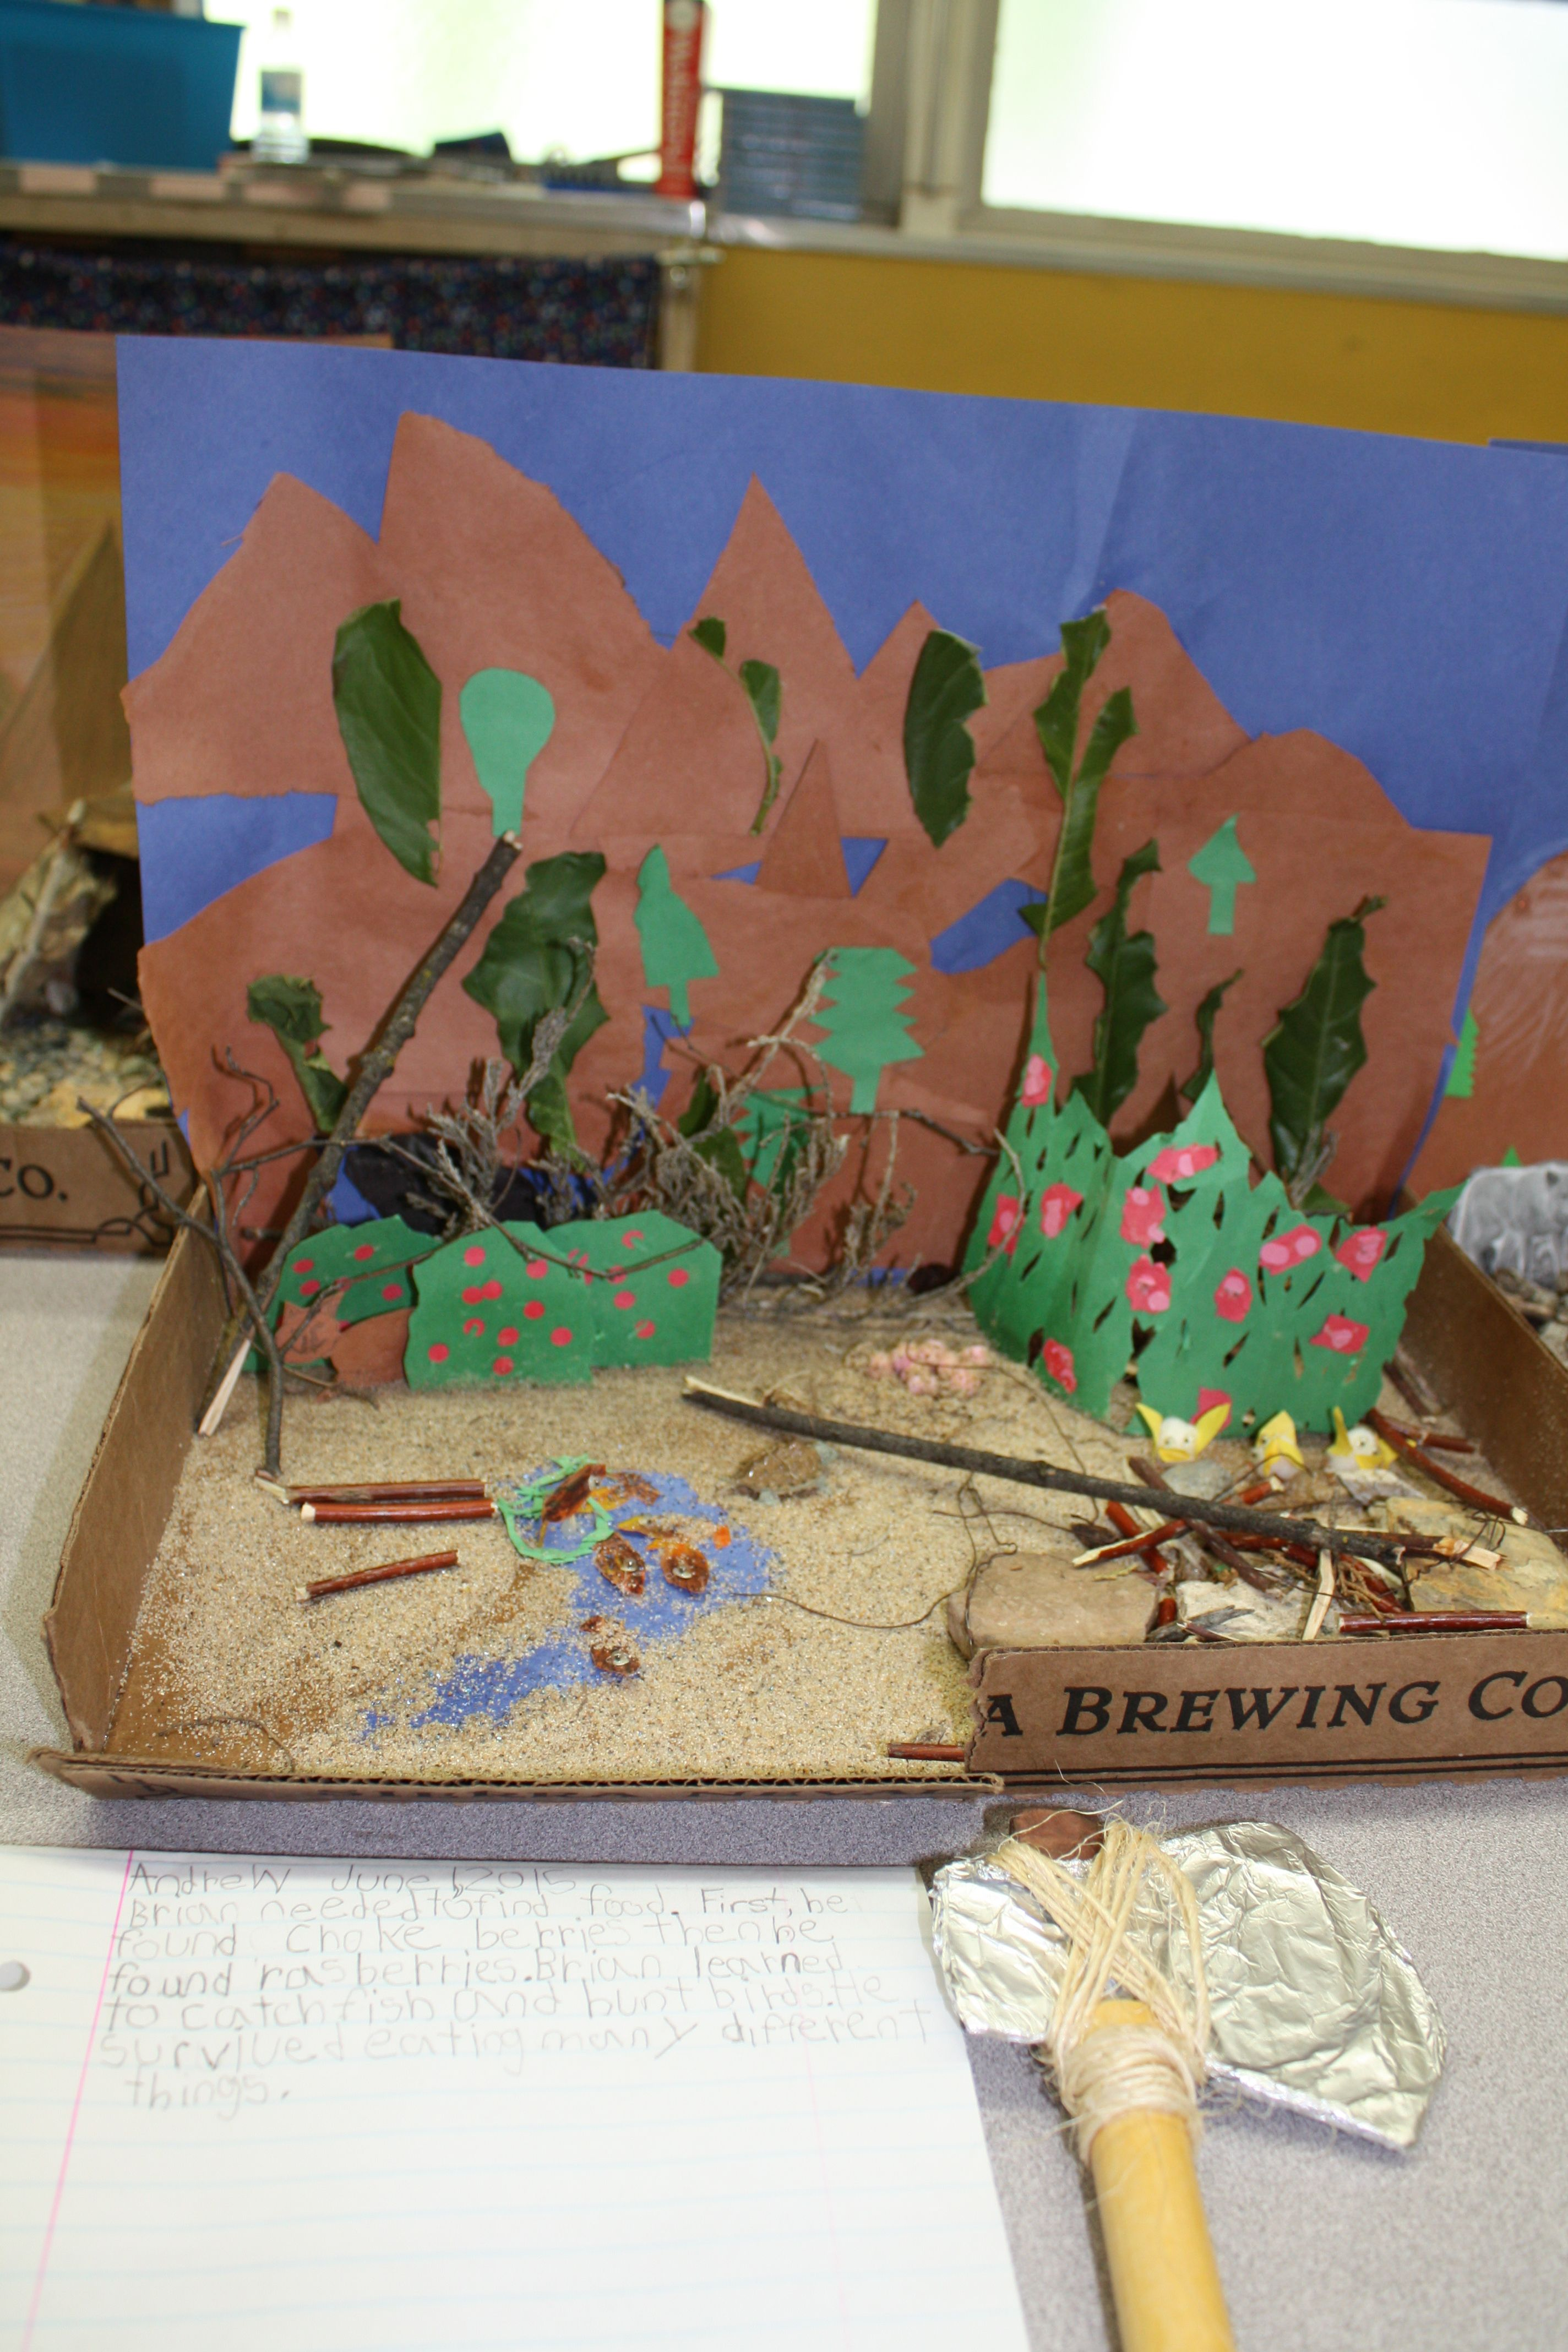 This Diorama Shows The Food Sources That The Author Wrote